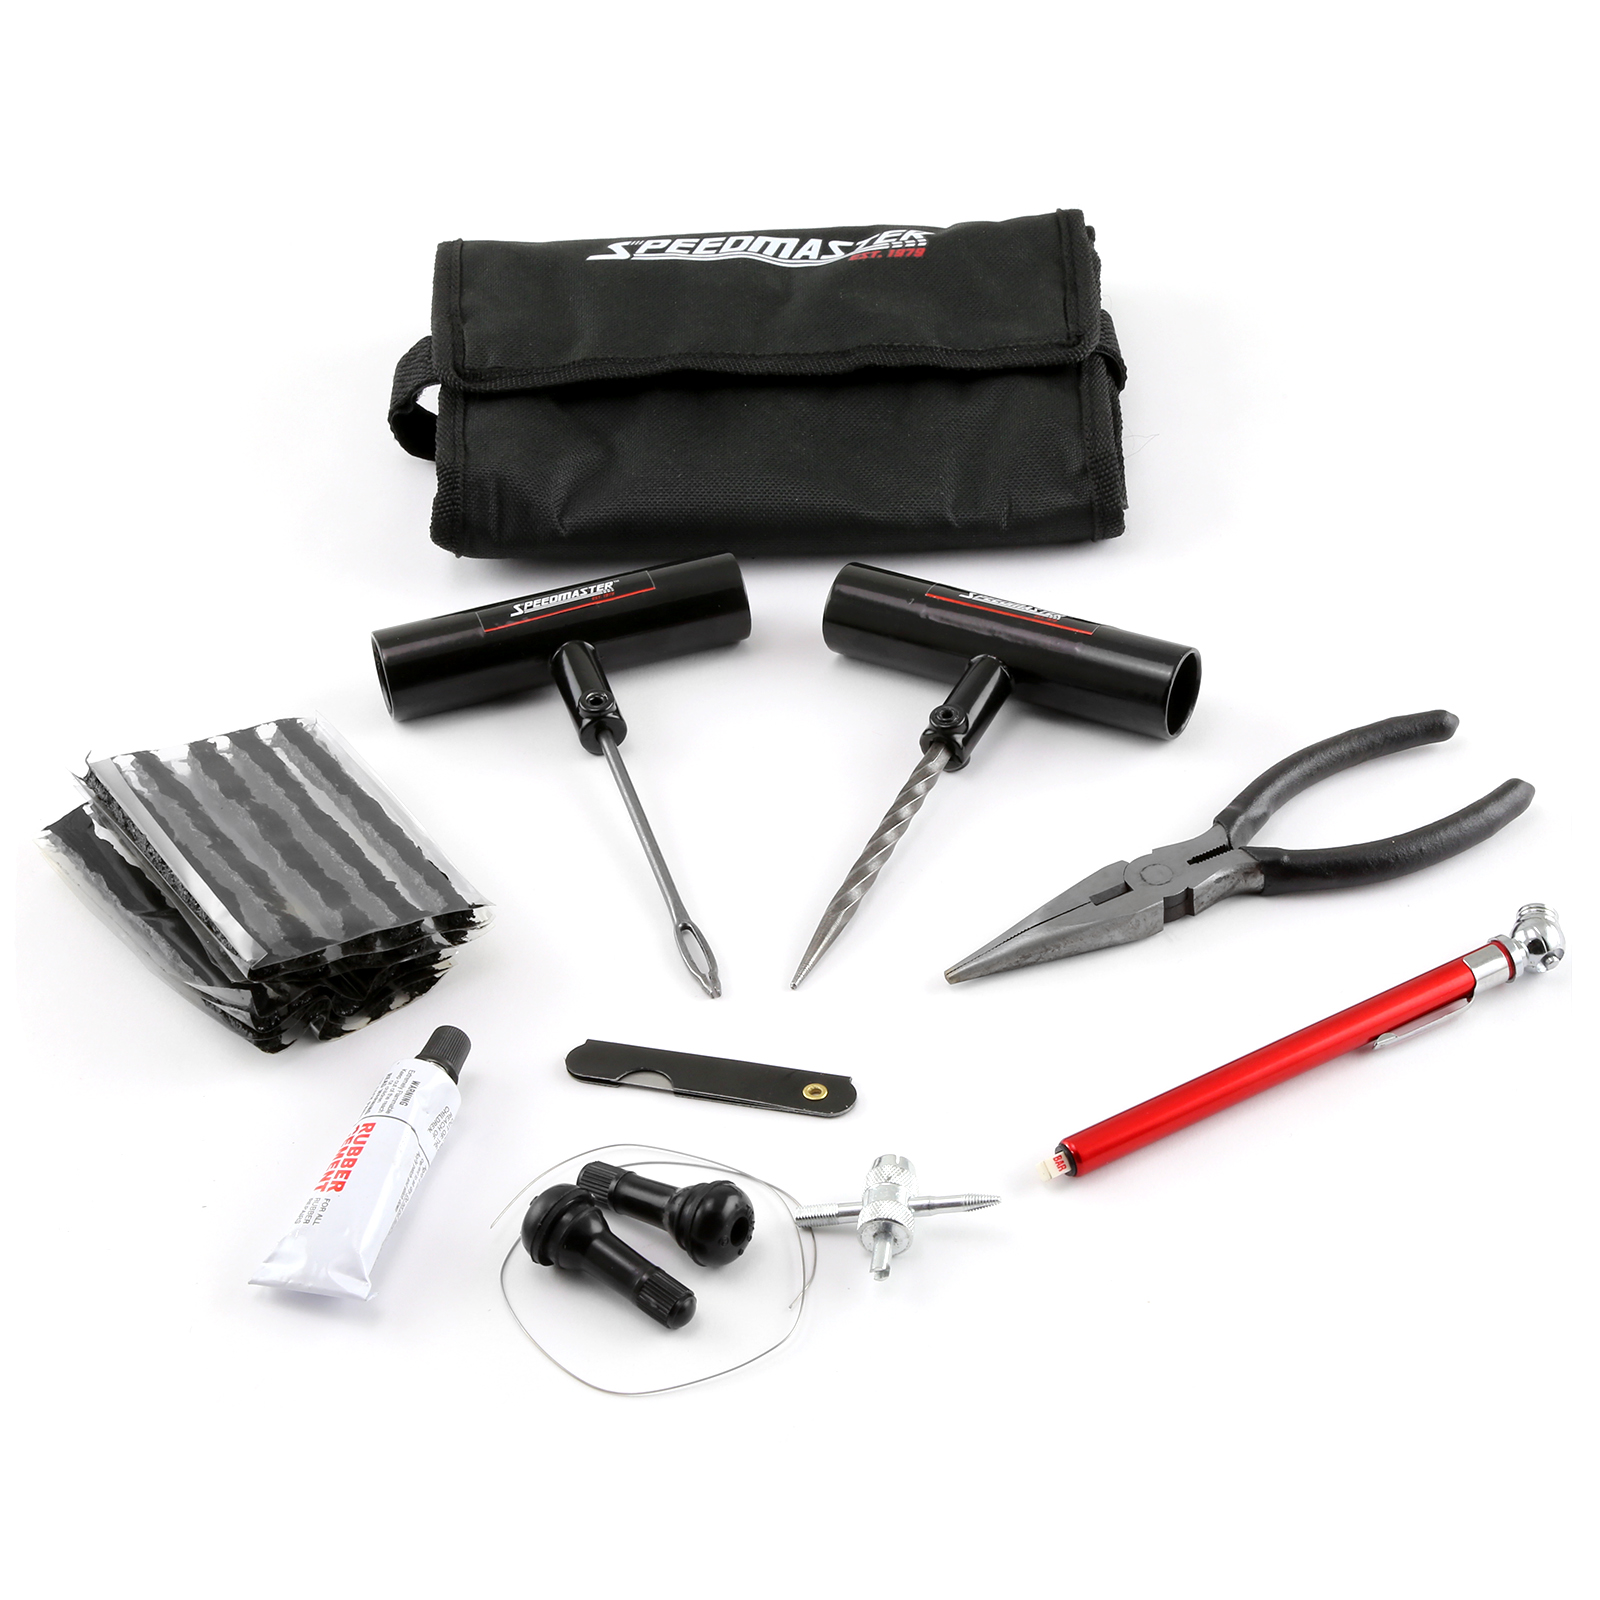 31pc Tire Puncture Repair Kit Fix Motorcycle Car Truck - Roll-Up Soft Case